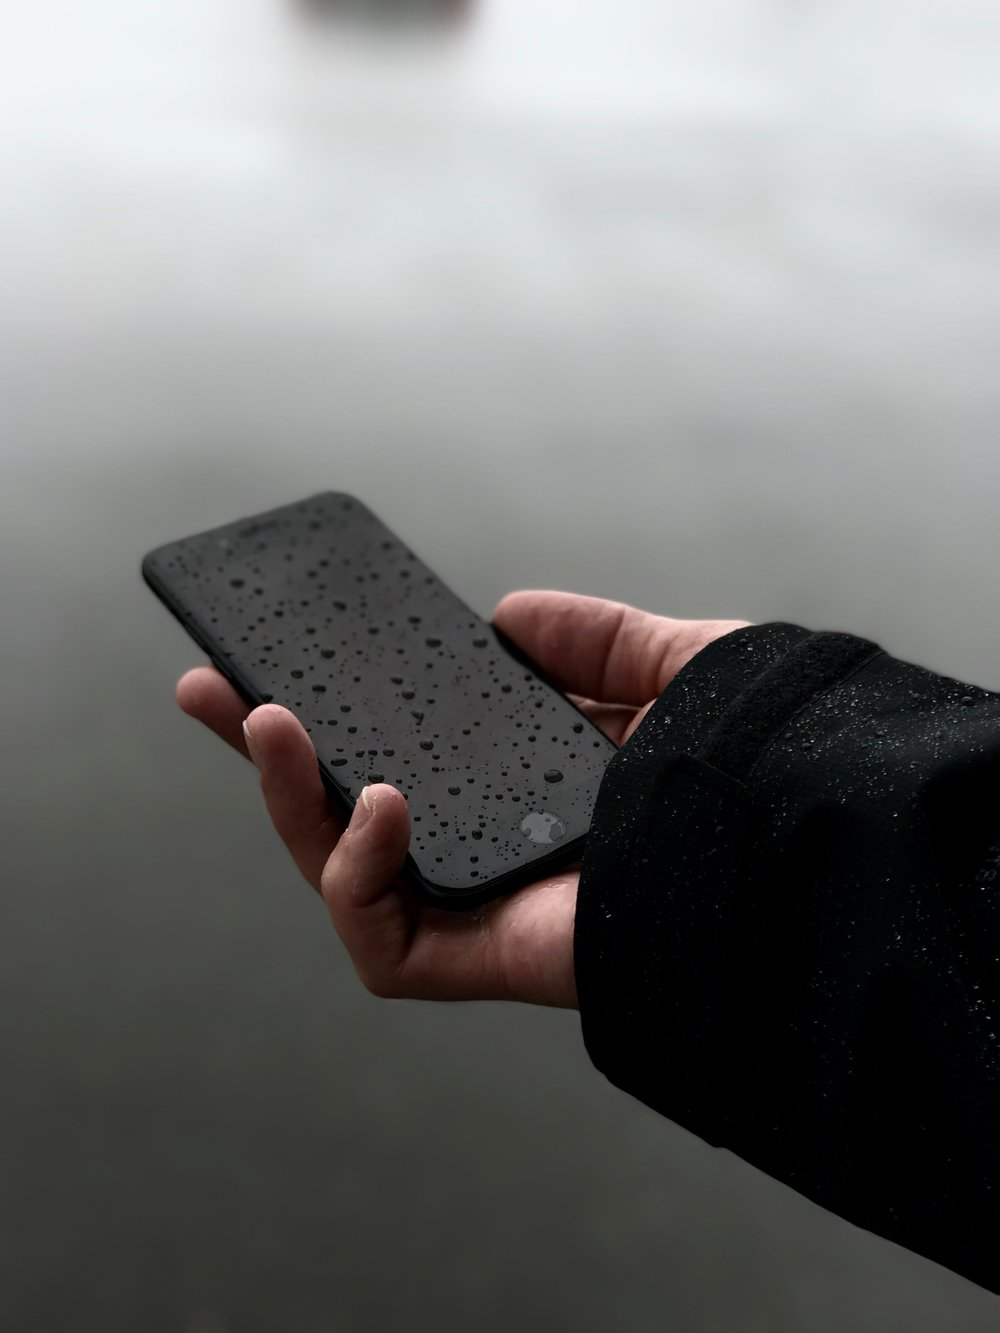 iPhone 7 in the rain.